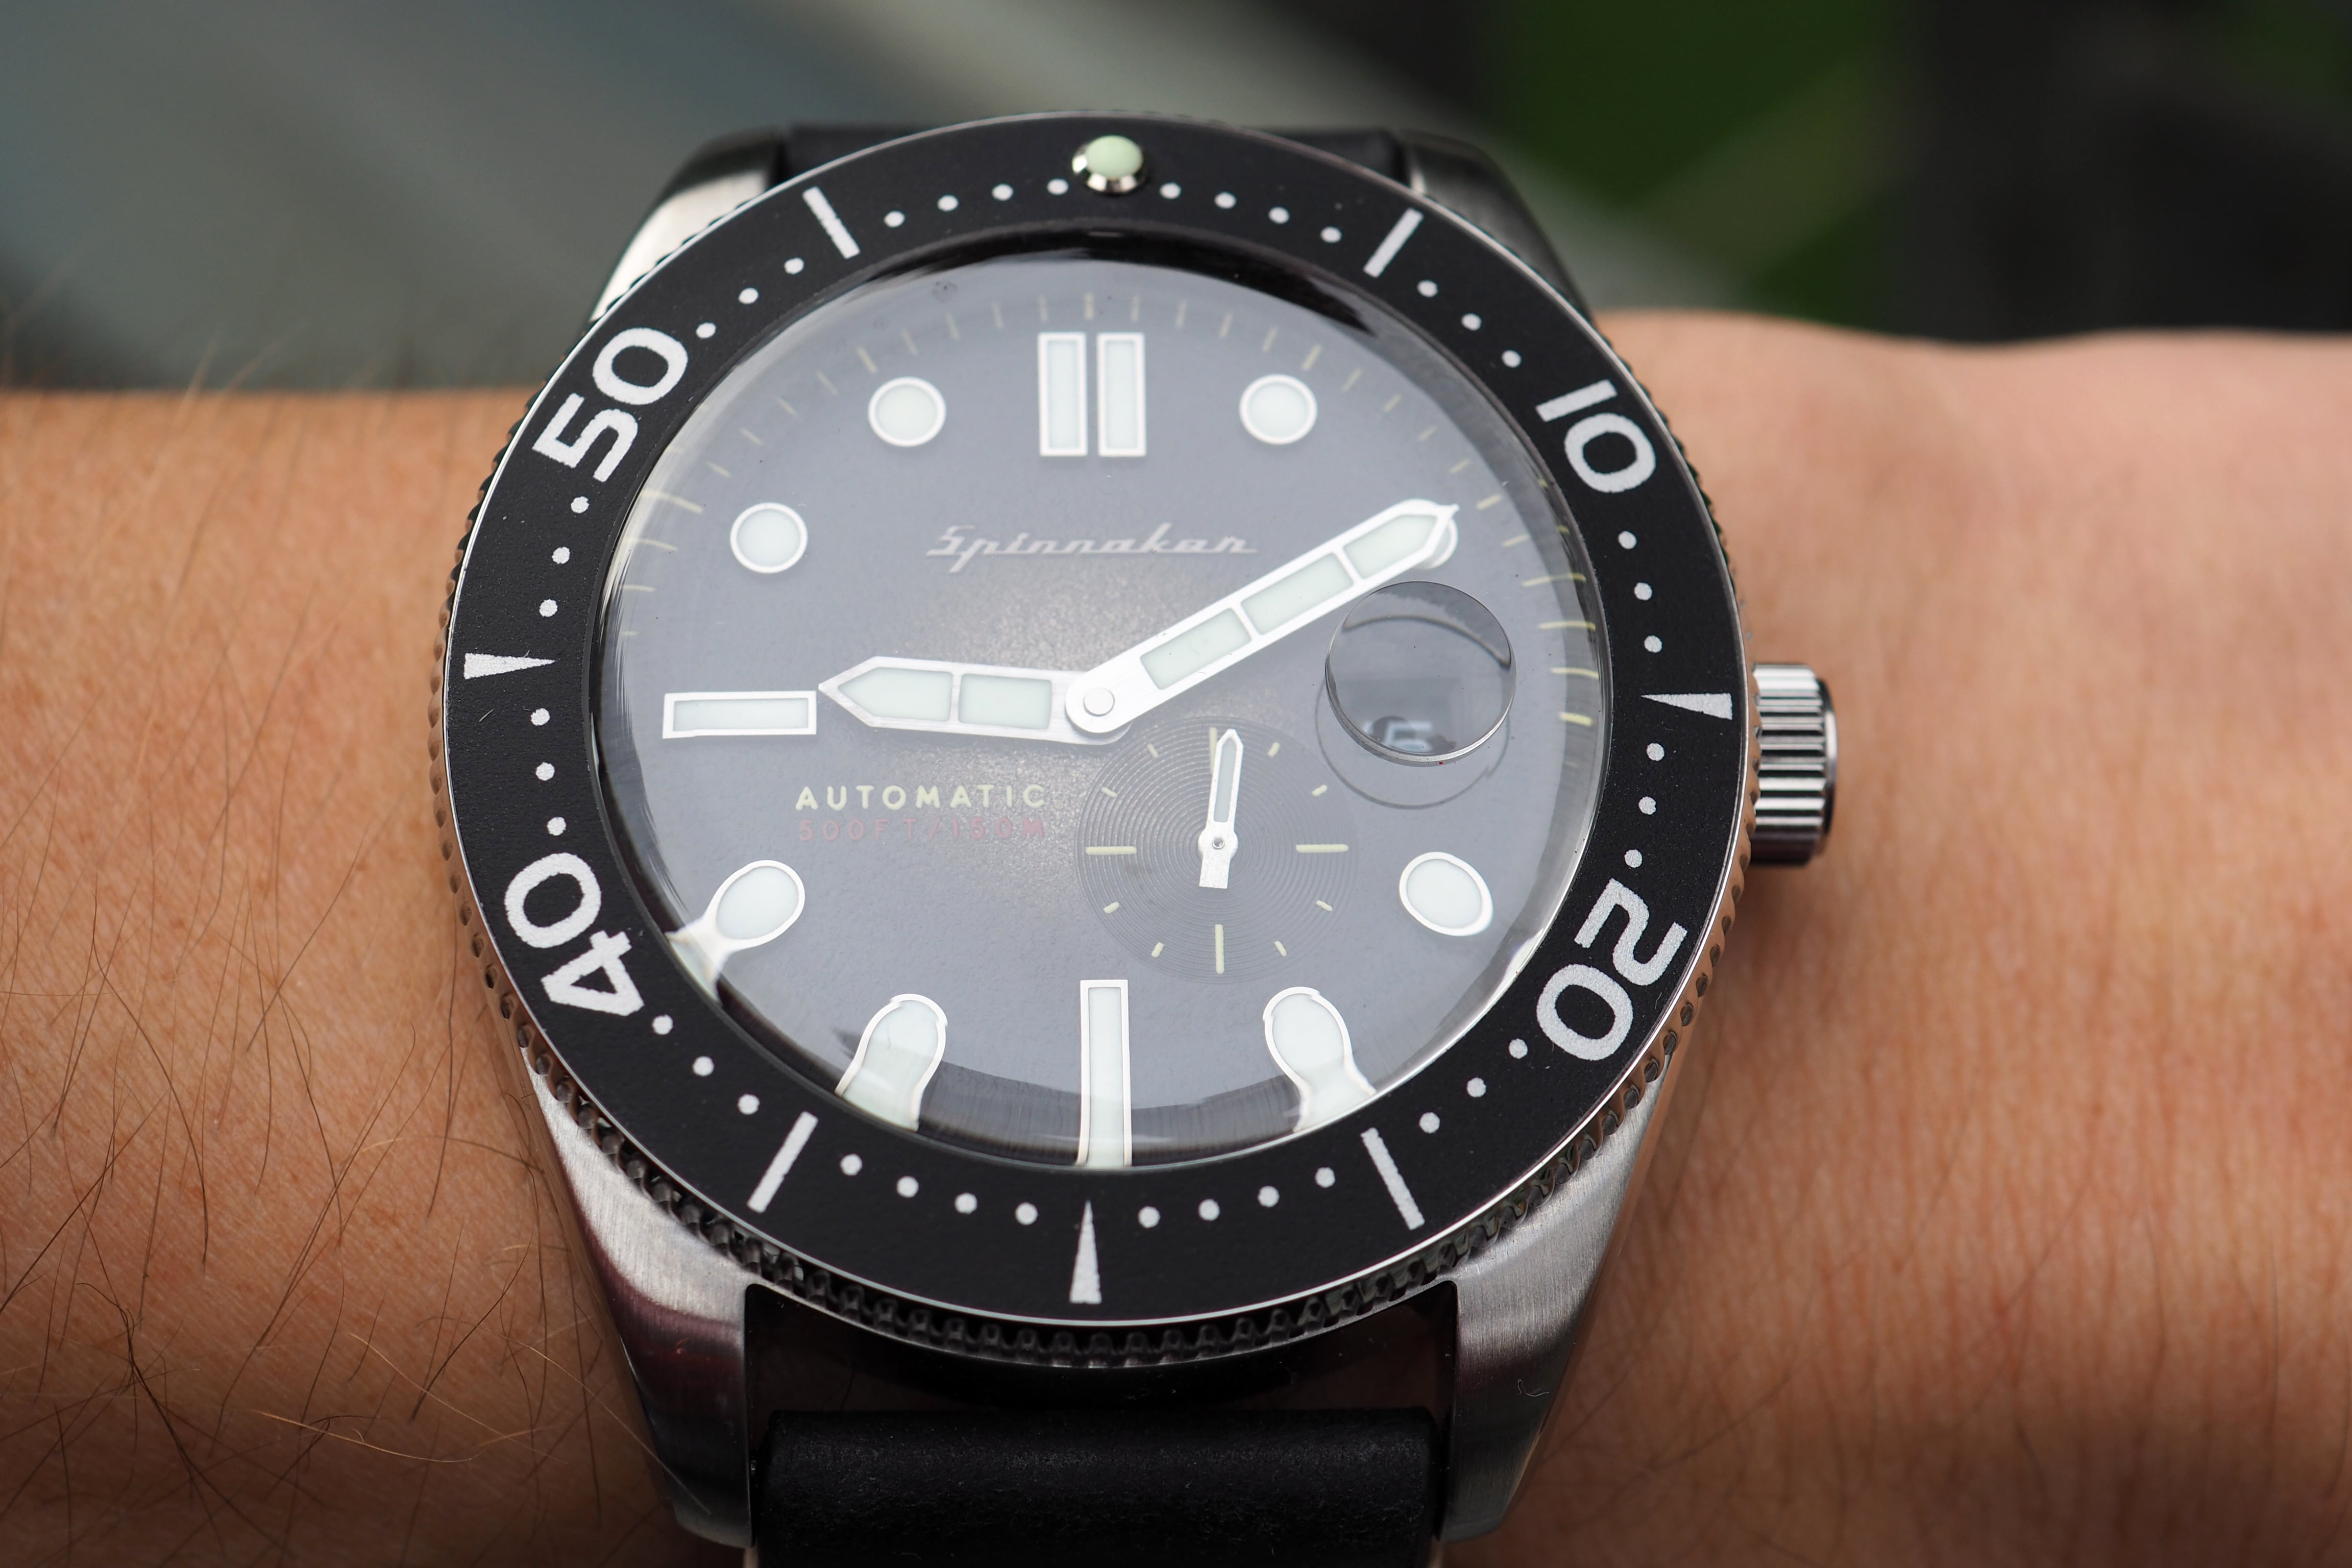 Direct view on wrist